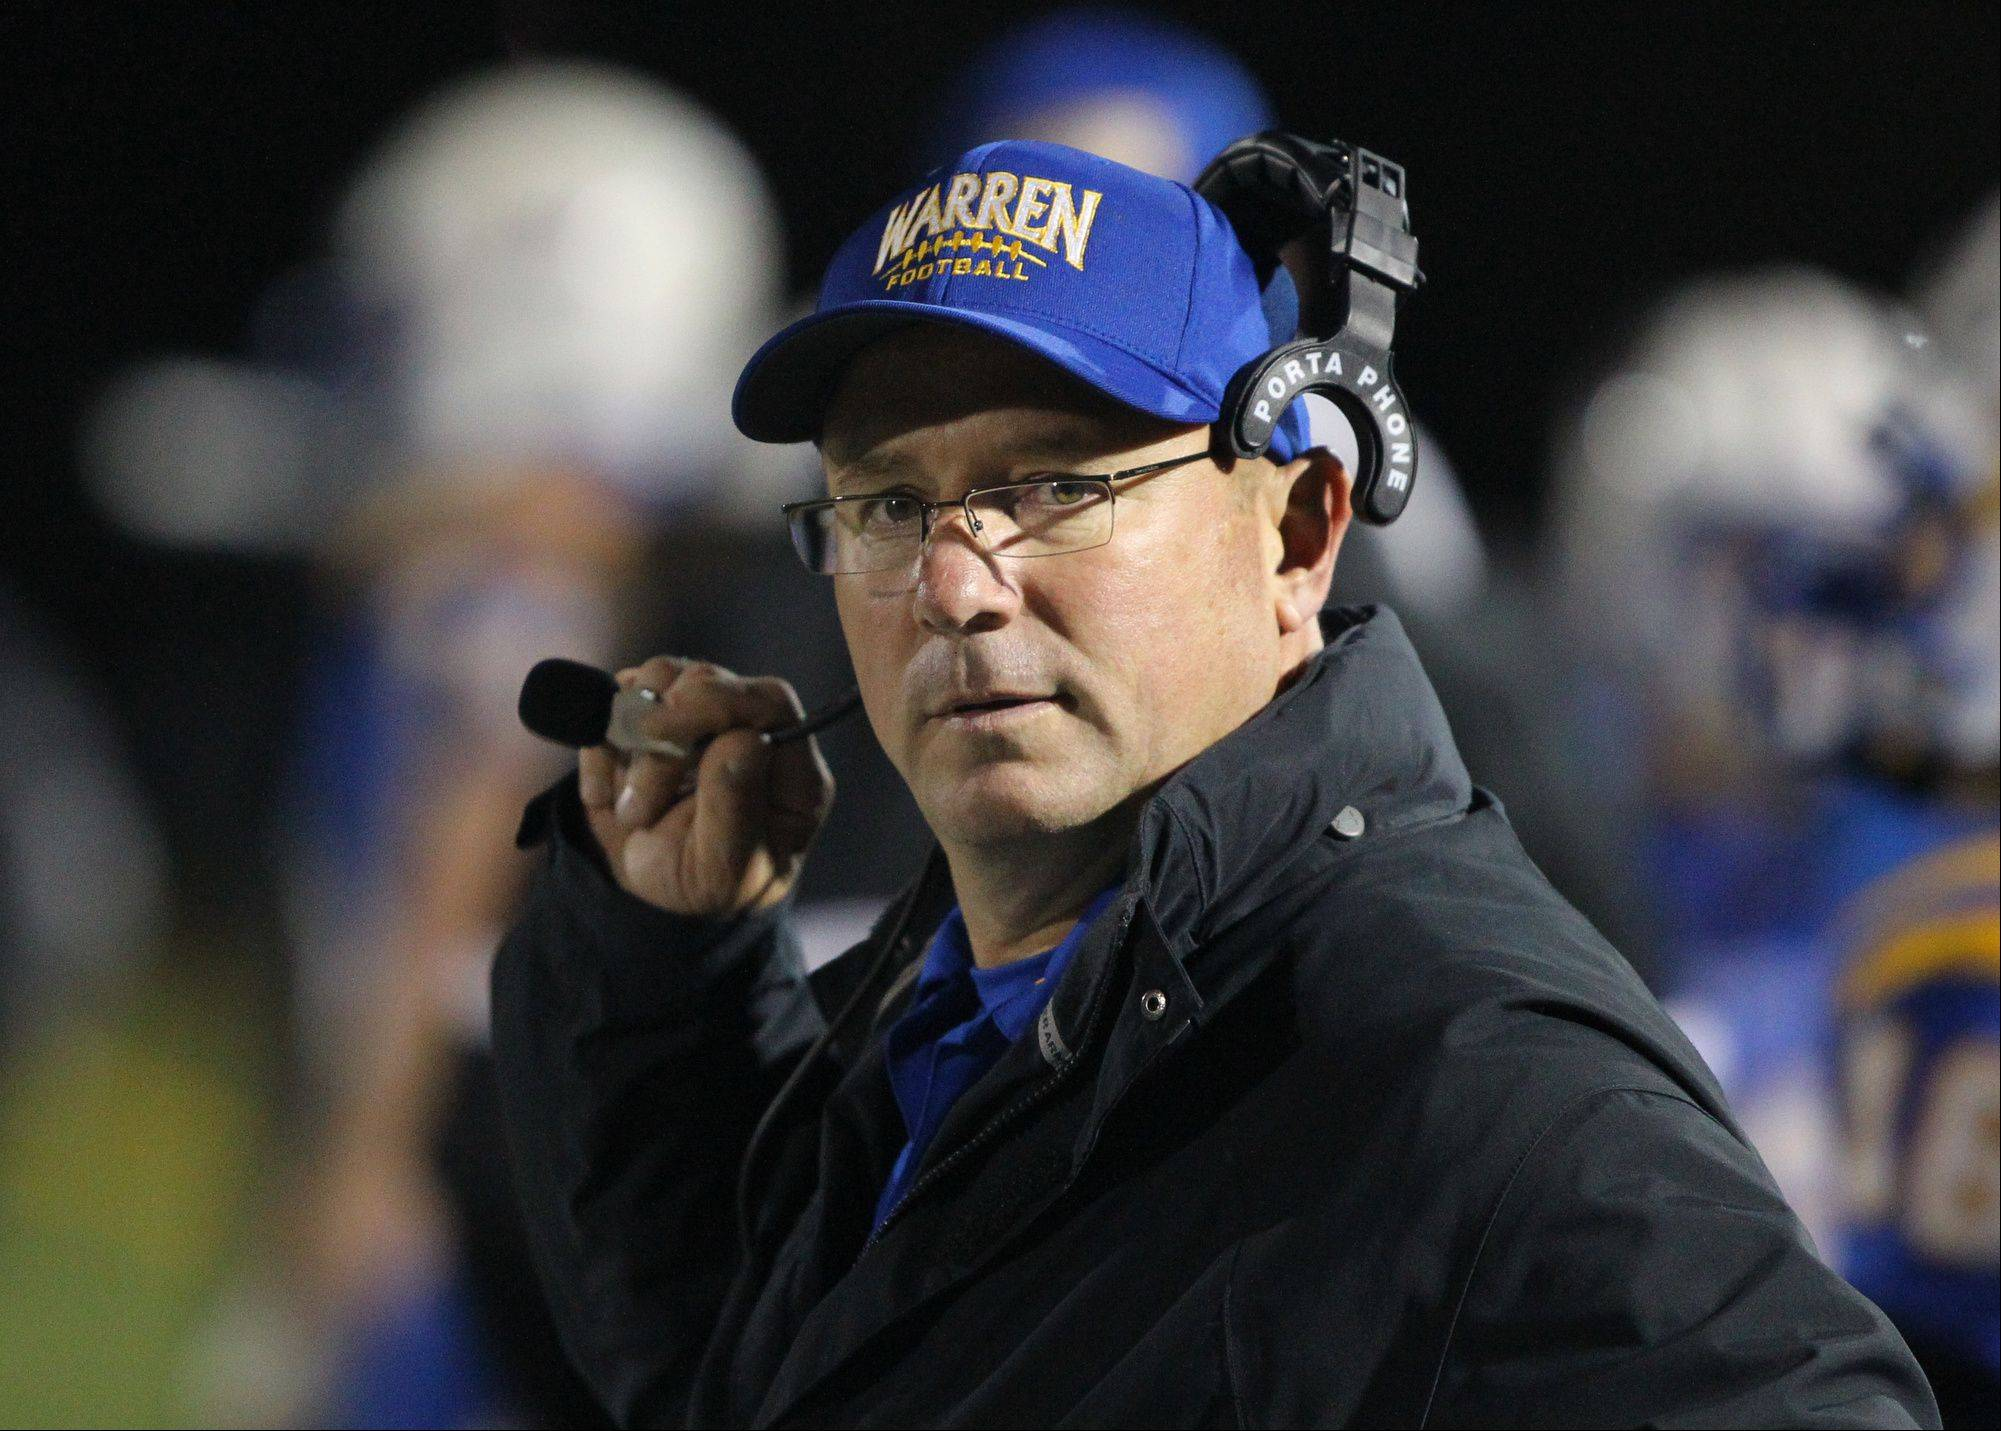 Warren football coach Dave Mohapp needs 1 more win to become the school�s winningest coach.